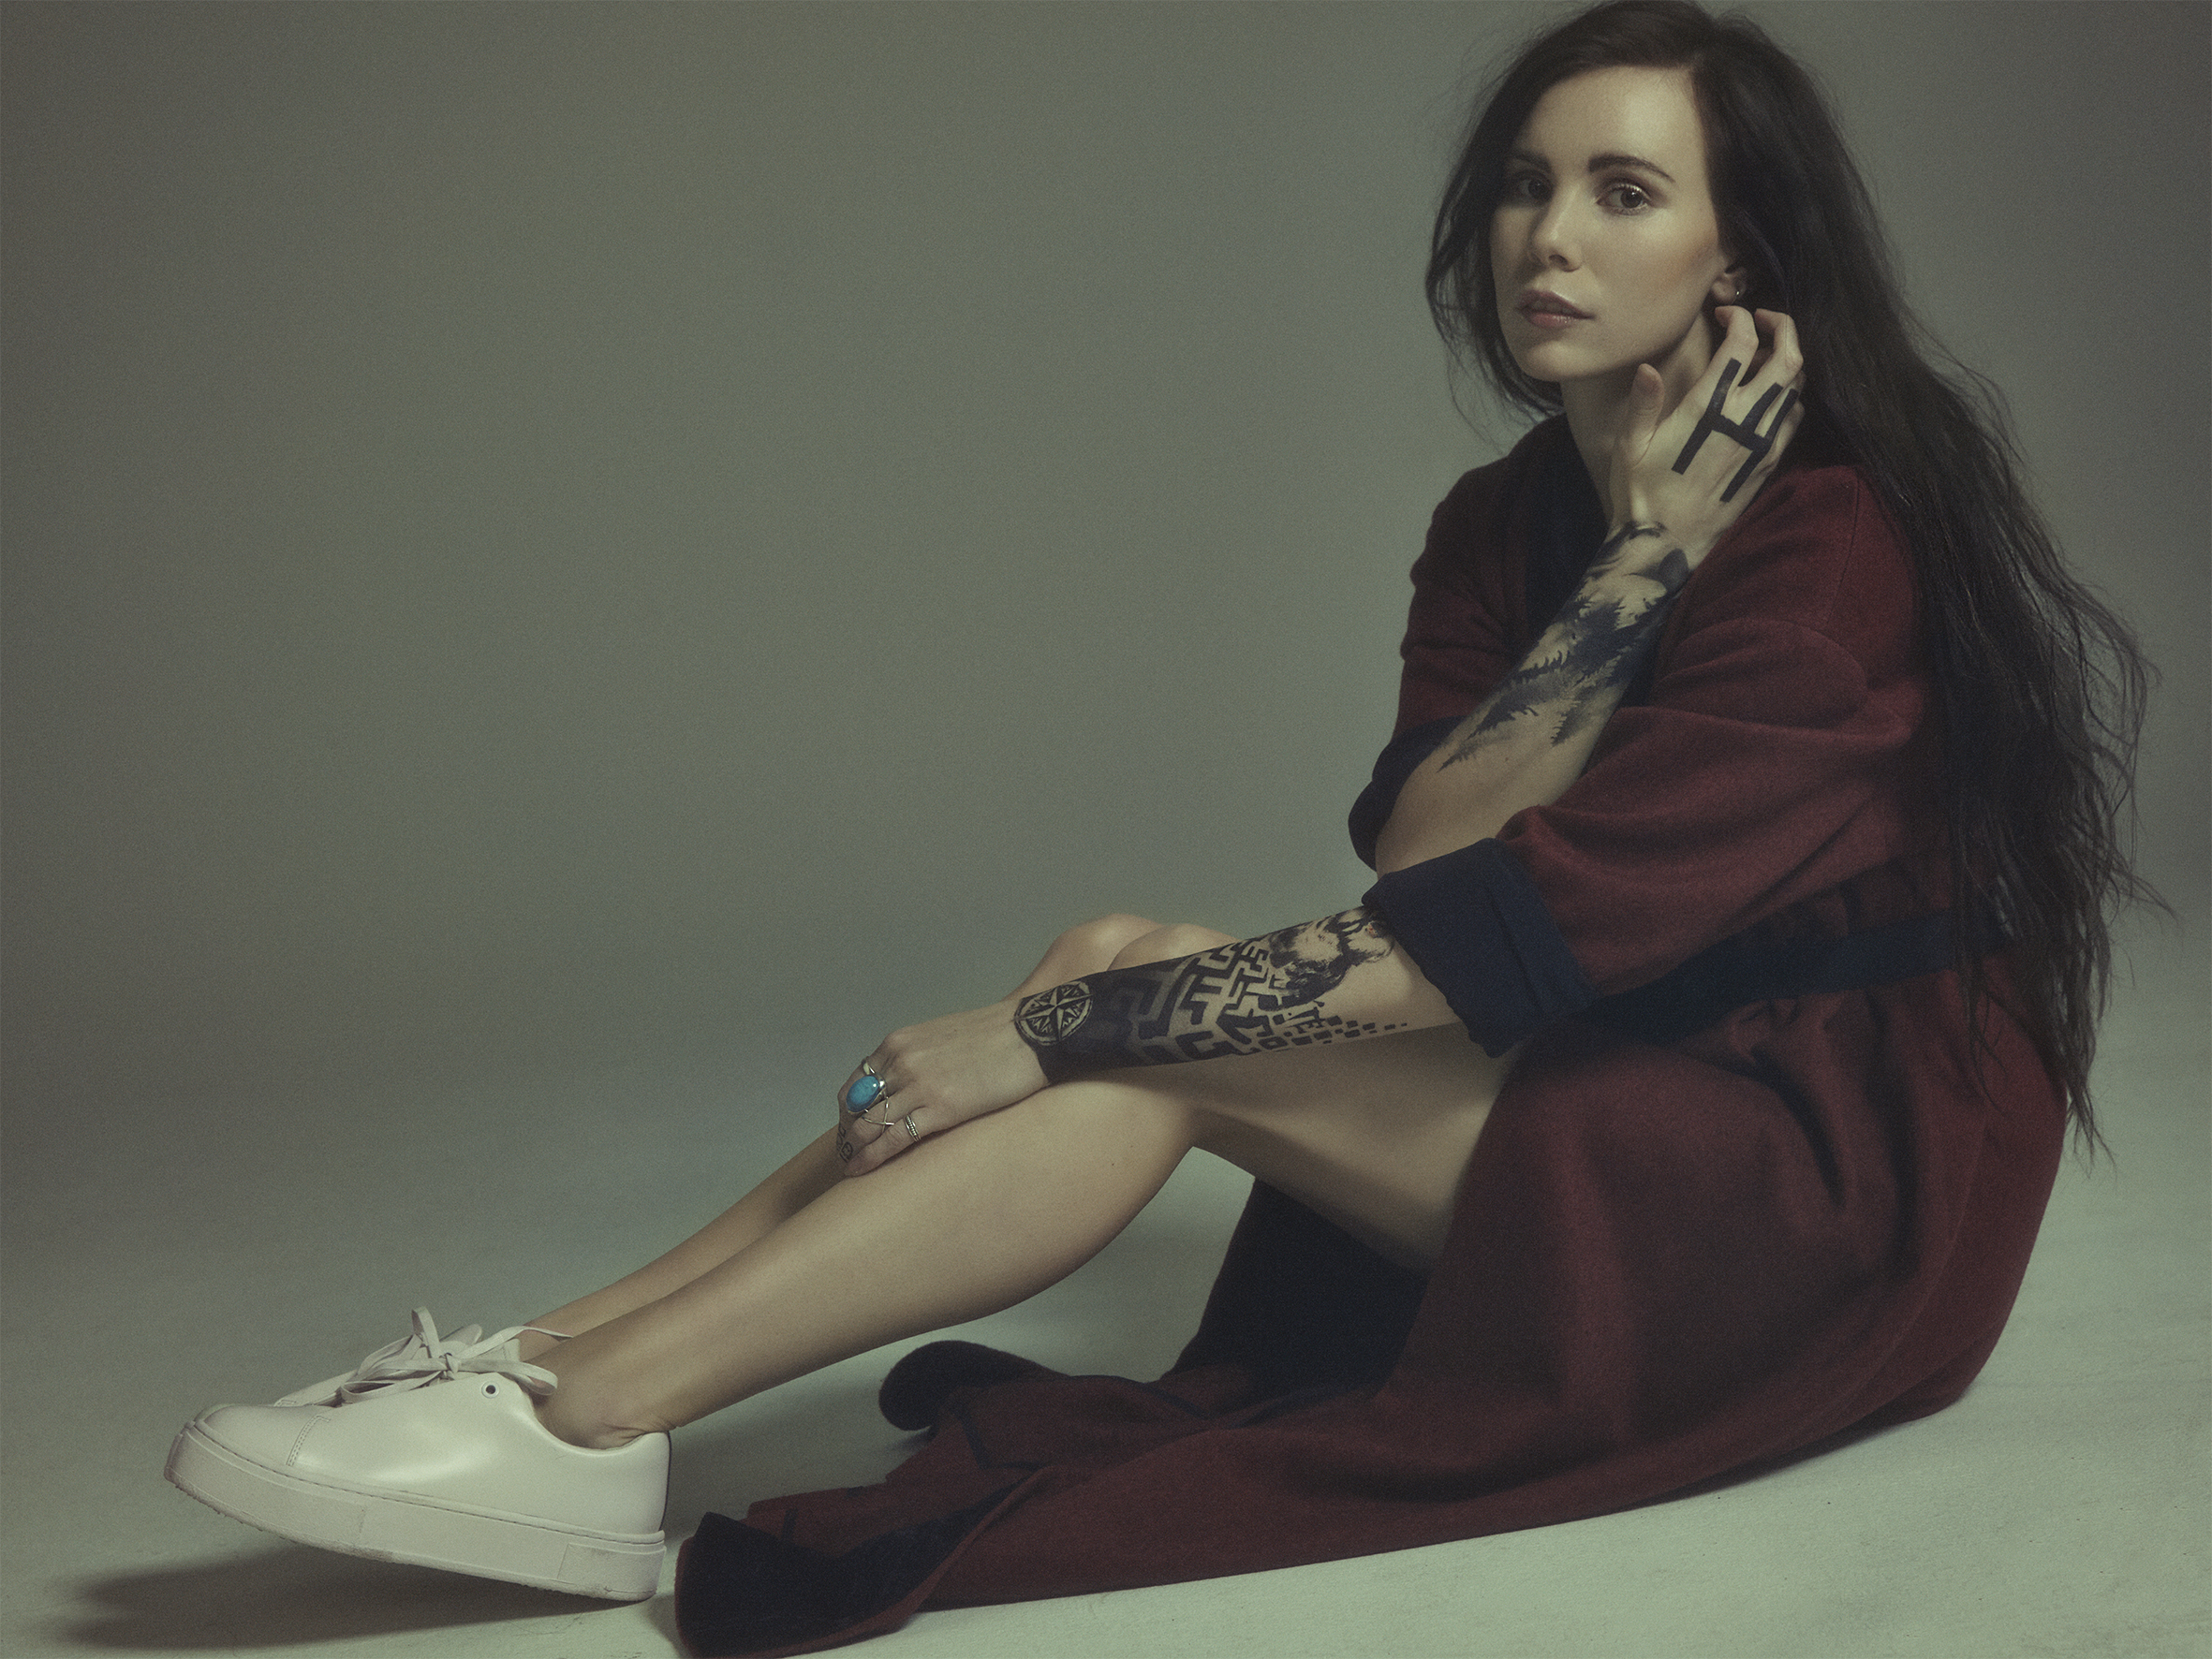 """""""Stay Off My Mind"""" by Skott is Northern Transmissions' 'Song of the Day'"""